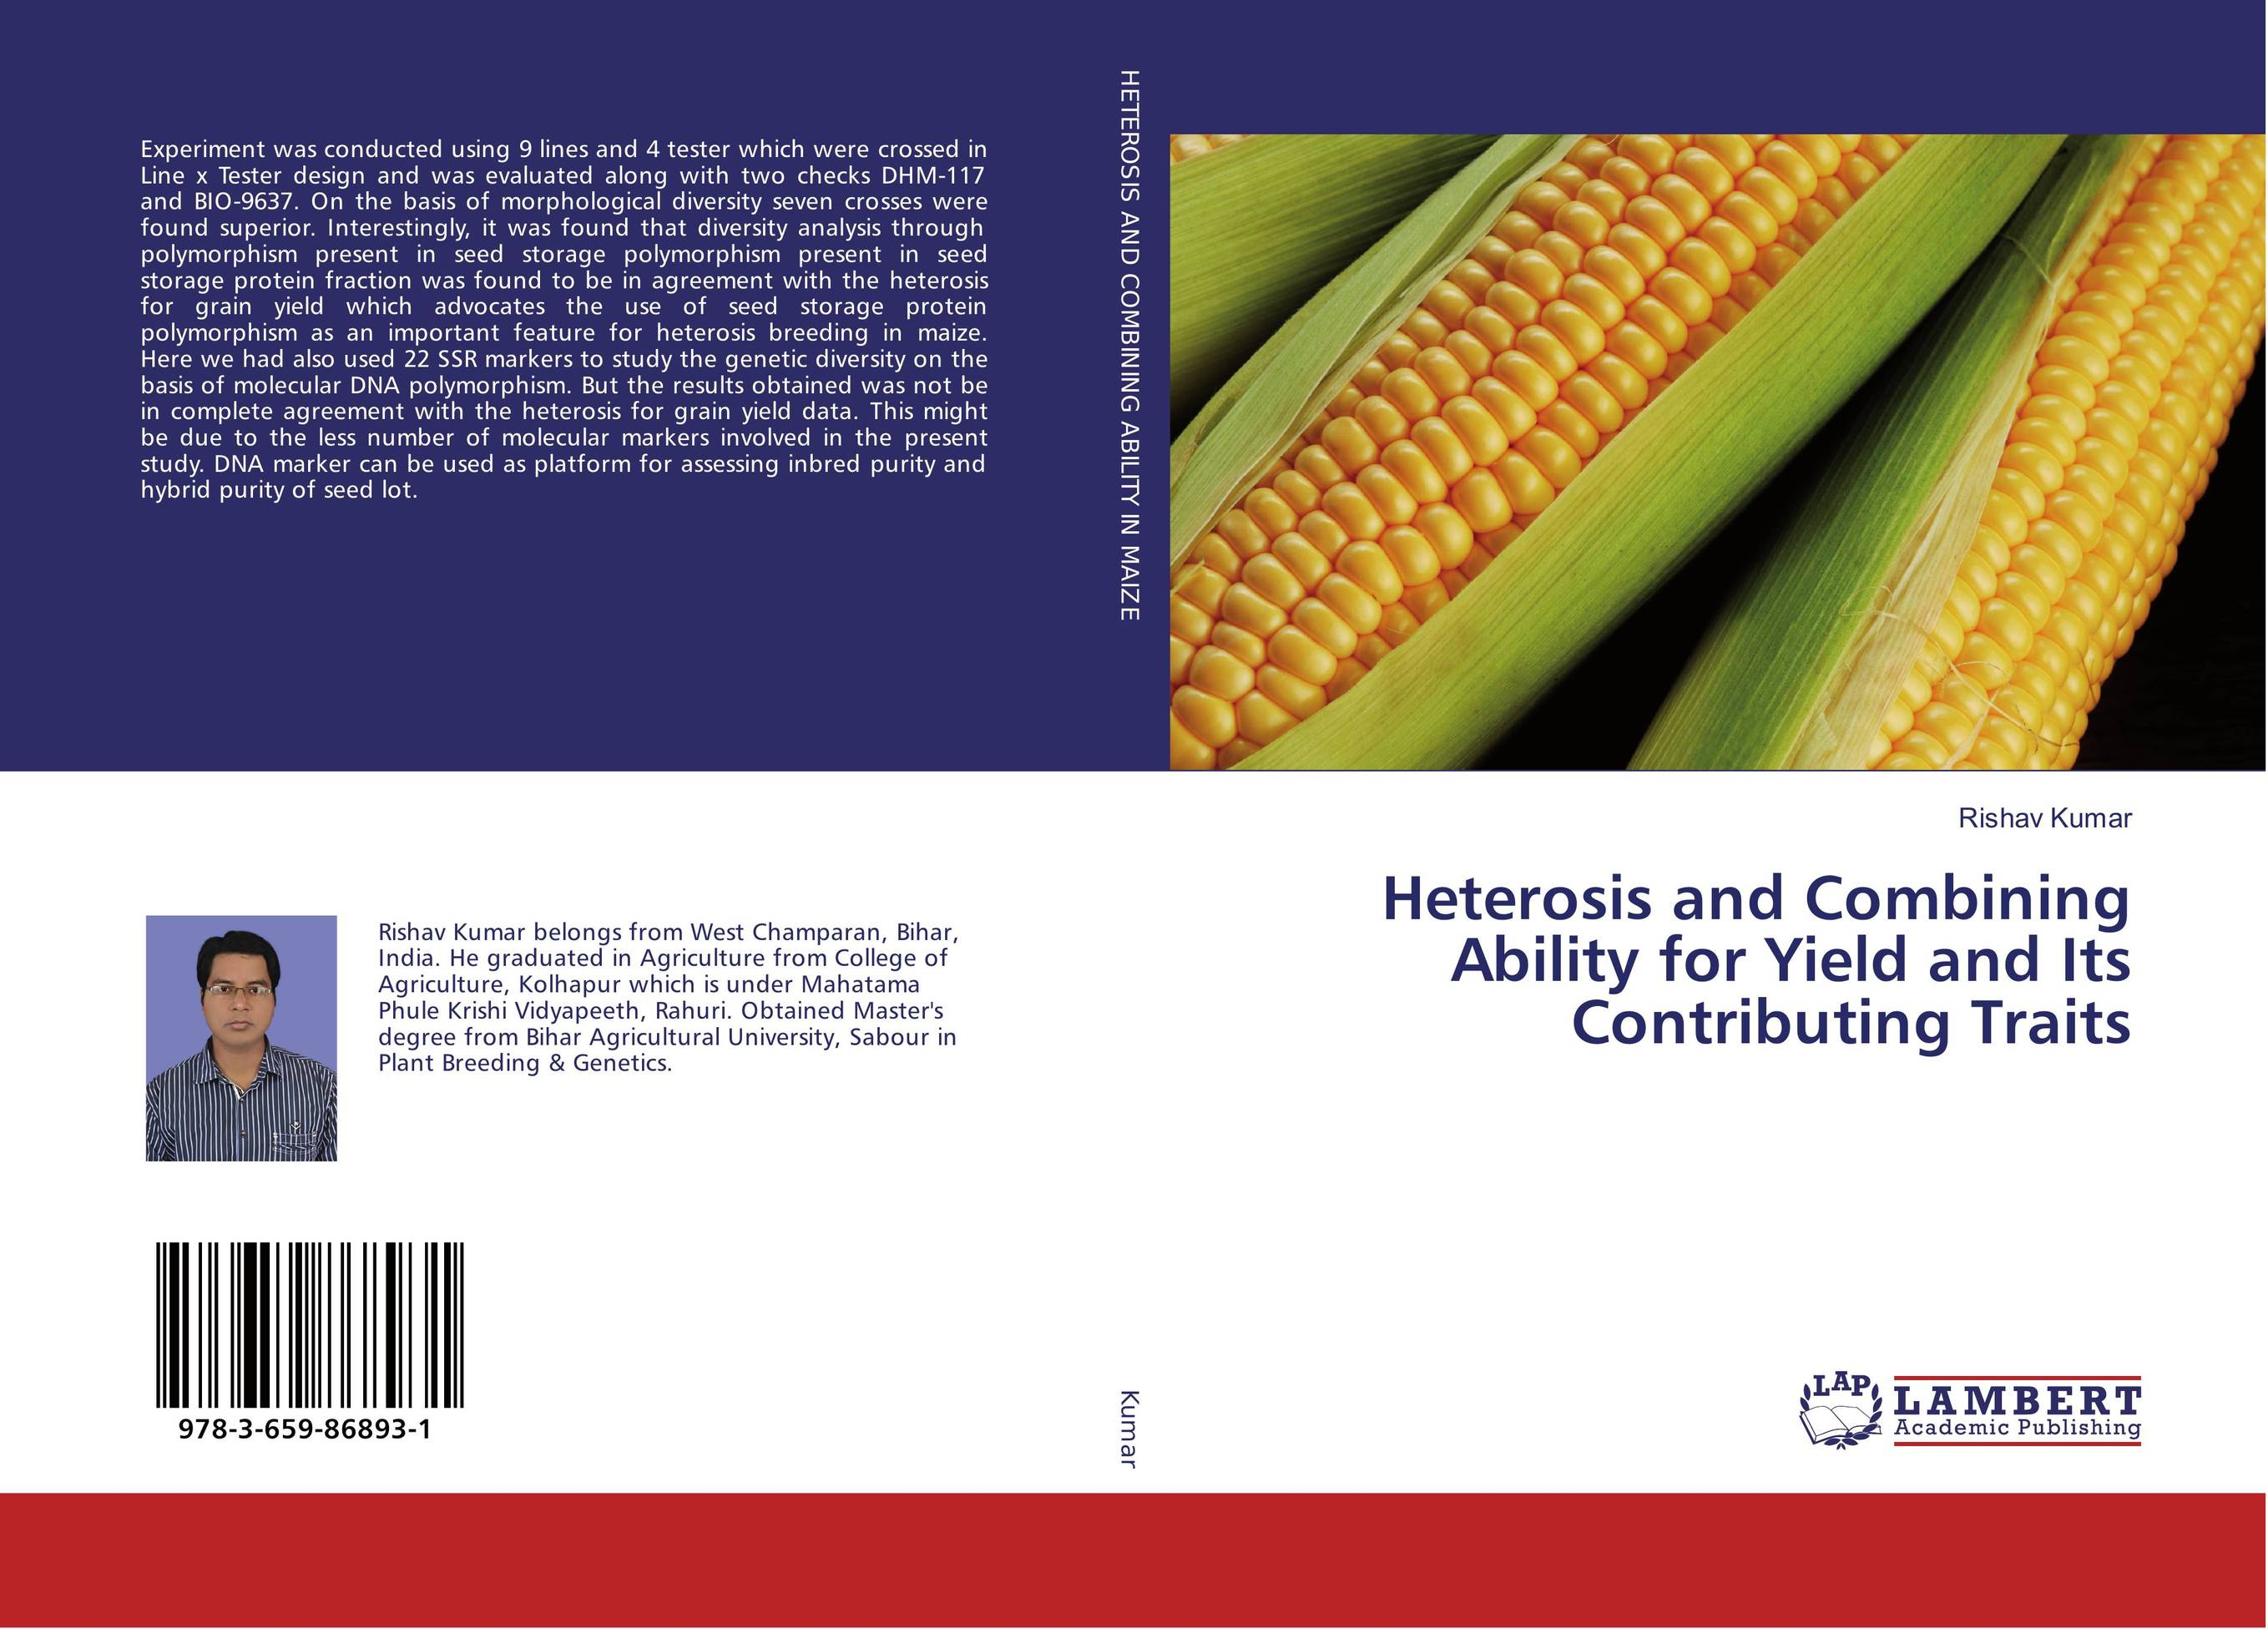 Heterosis and Combining Ability for Yield and Its Contributing Traits found in brooklyn